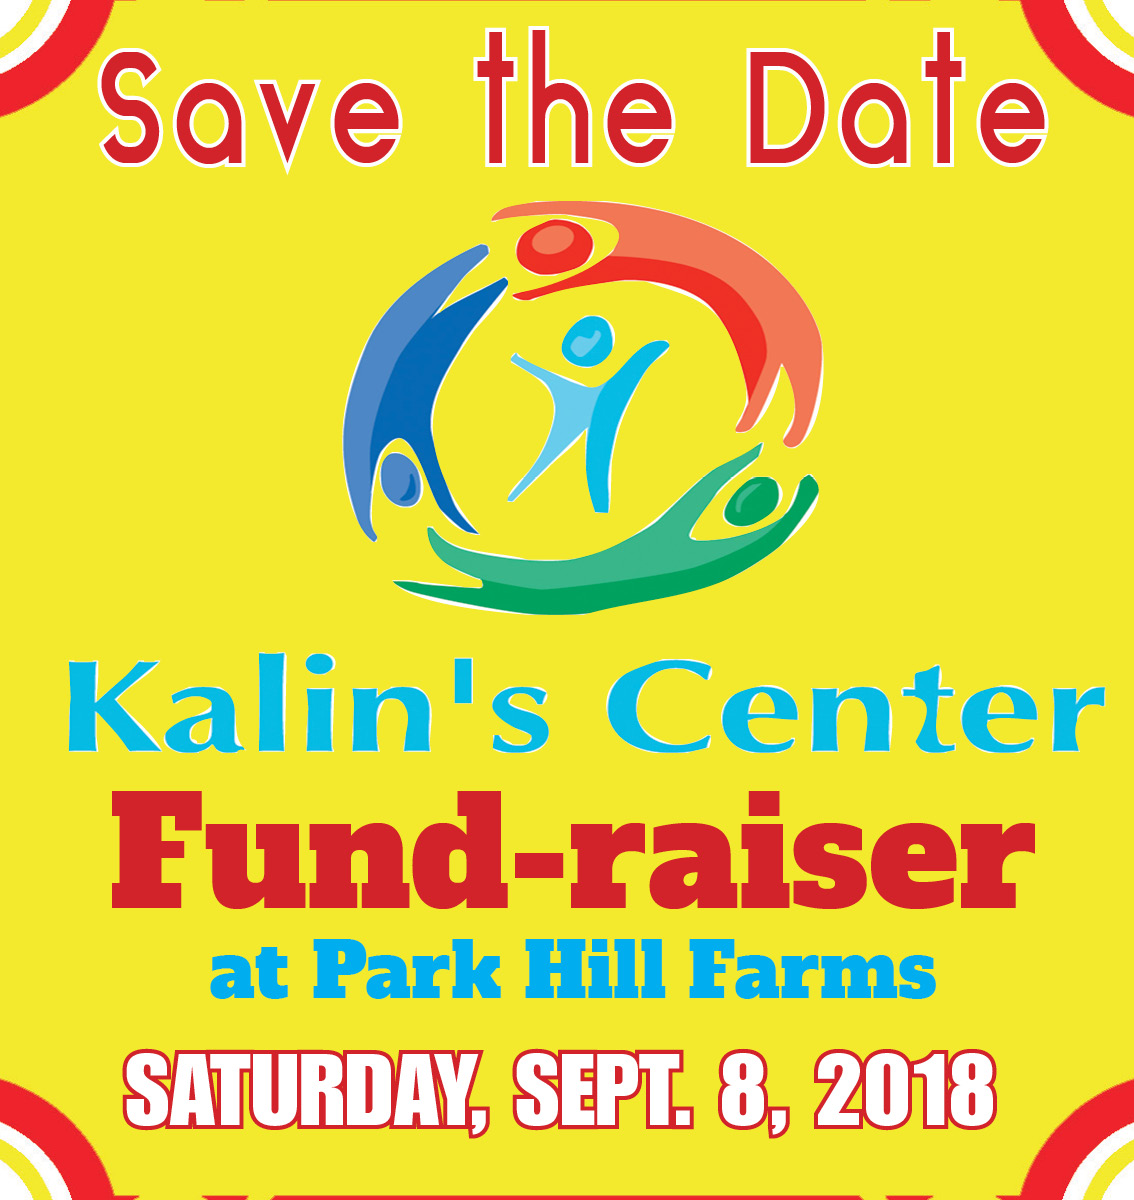 Kalins-Center-web-ad-SAVE-THE-DATE-2018.jpg